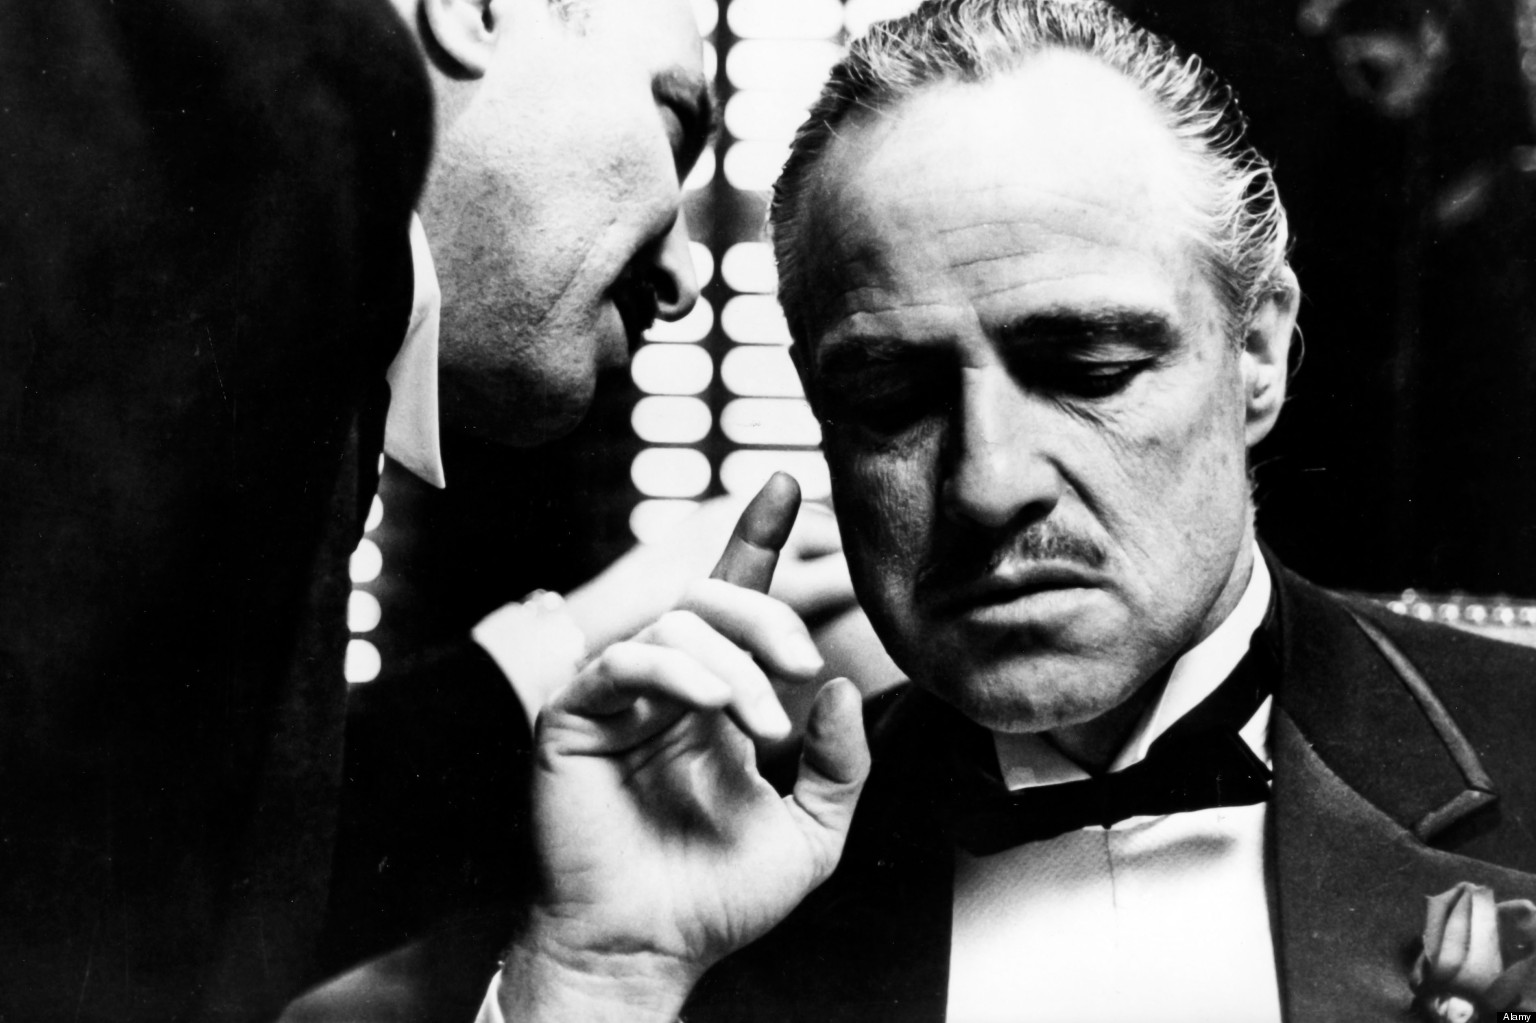 marlon brando in the godfather 1972